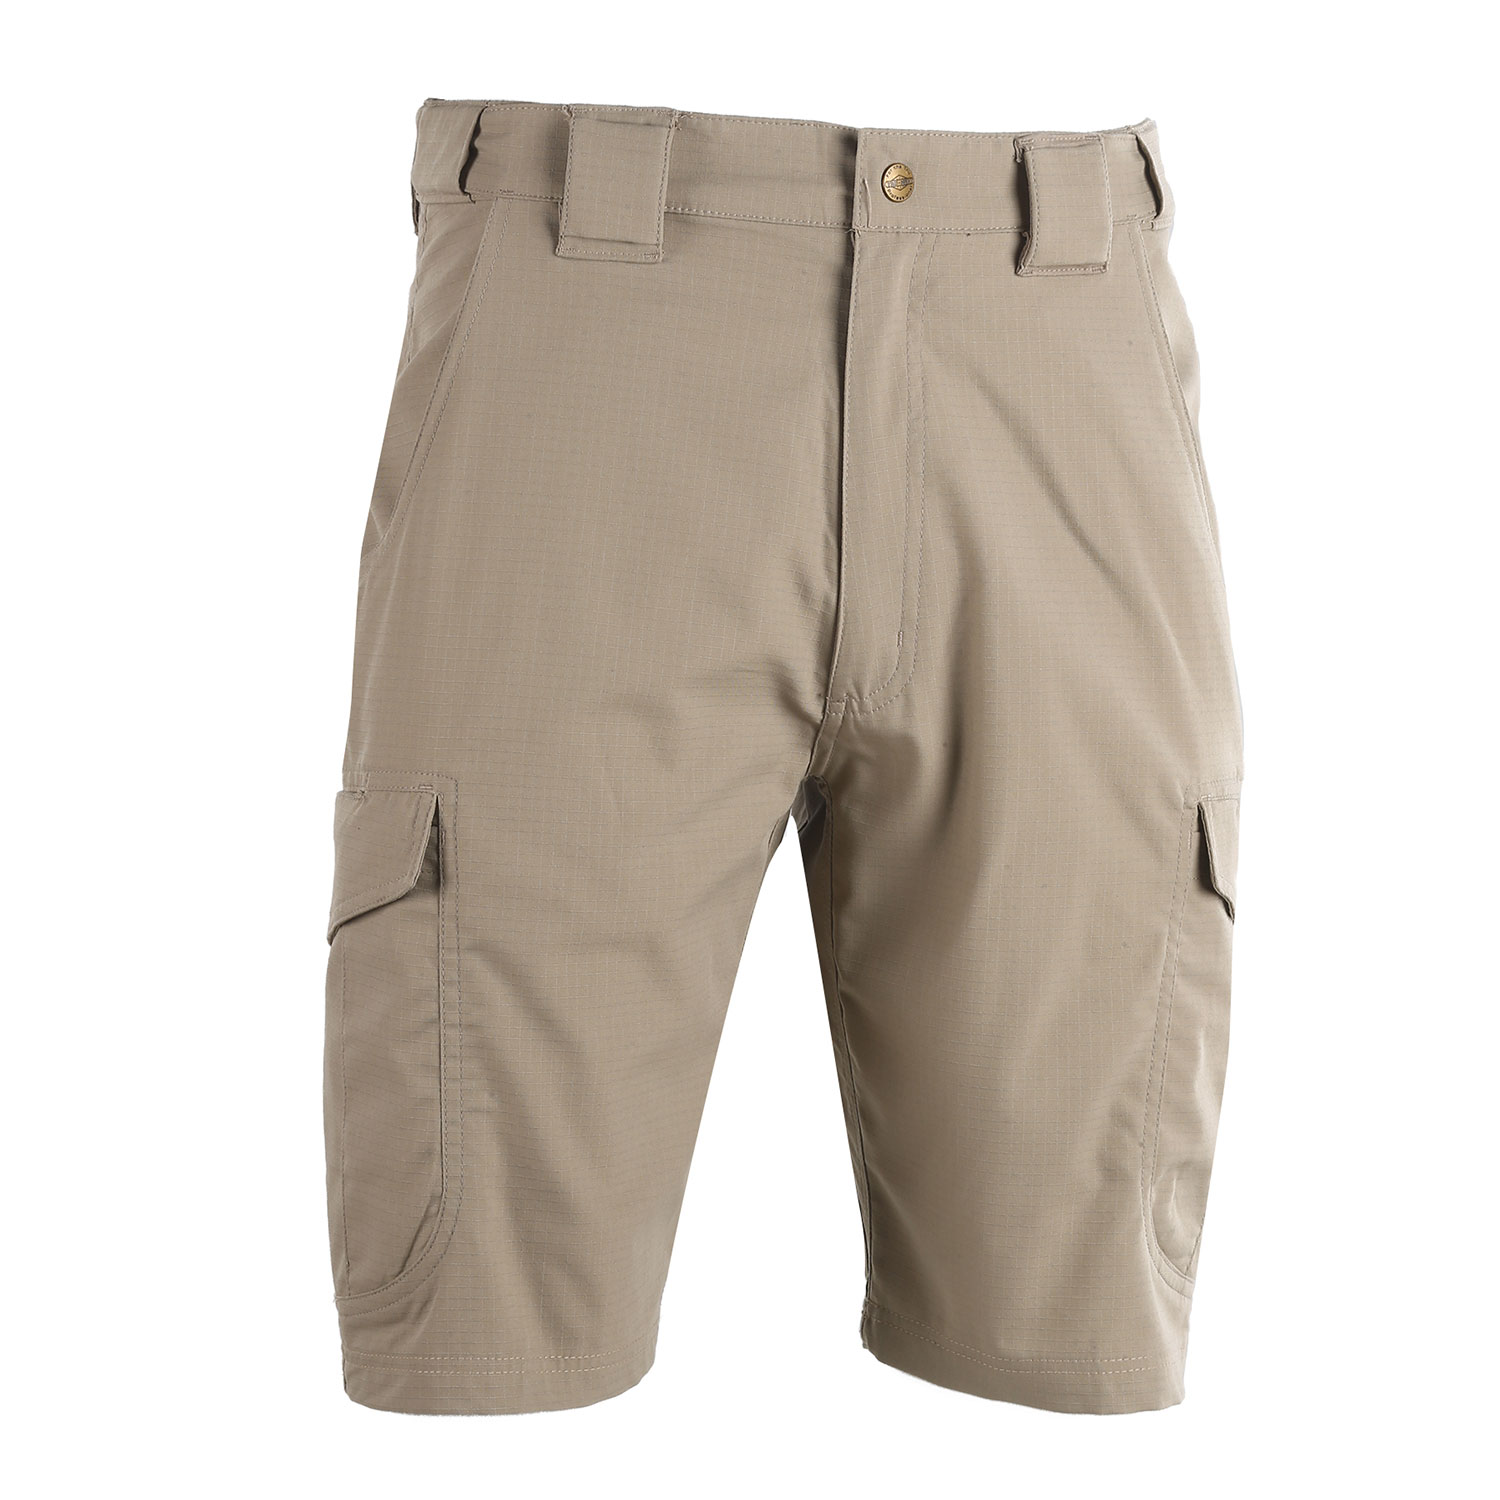 TRU-SPEC 24-7 Ascent Shorts